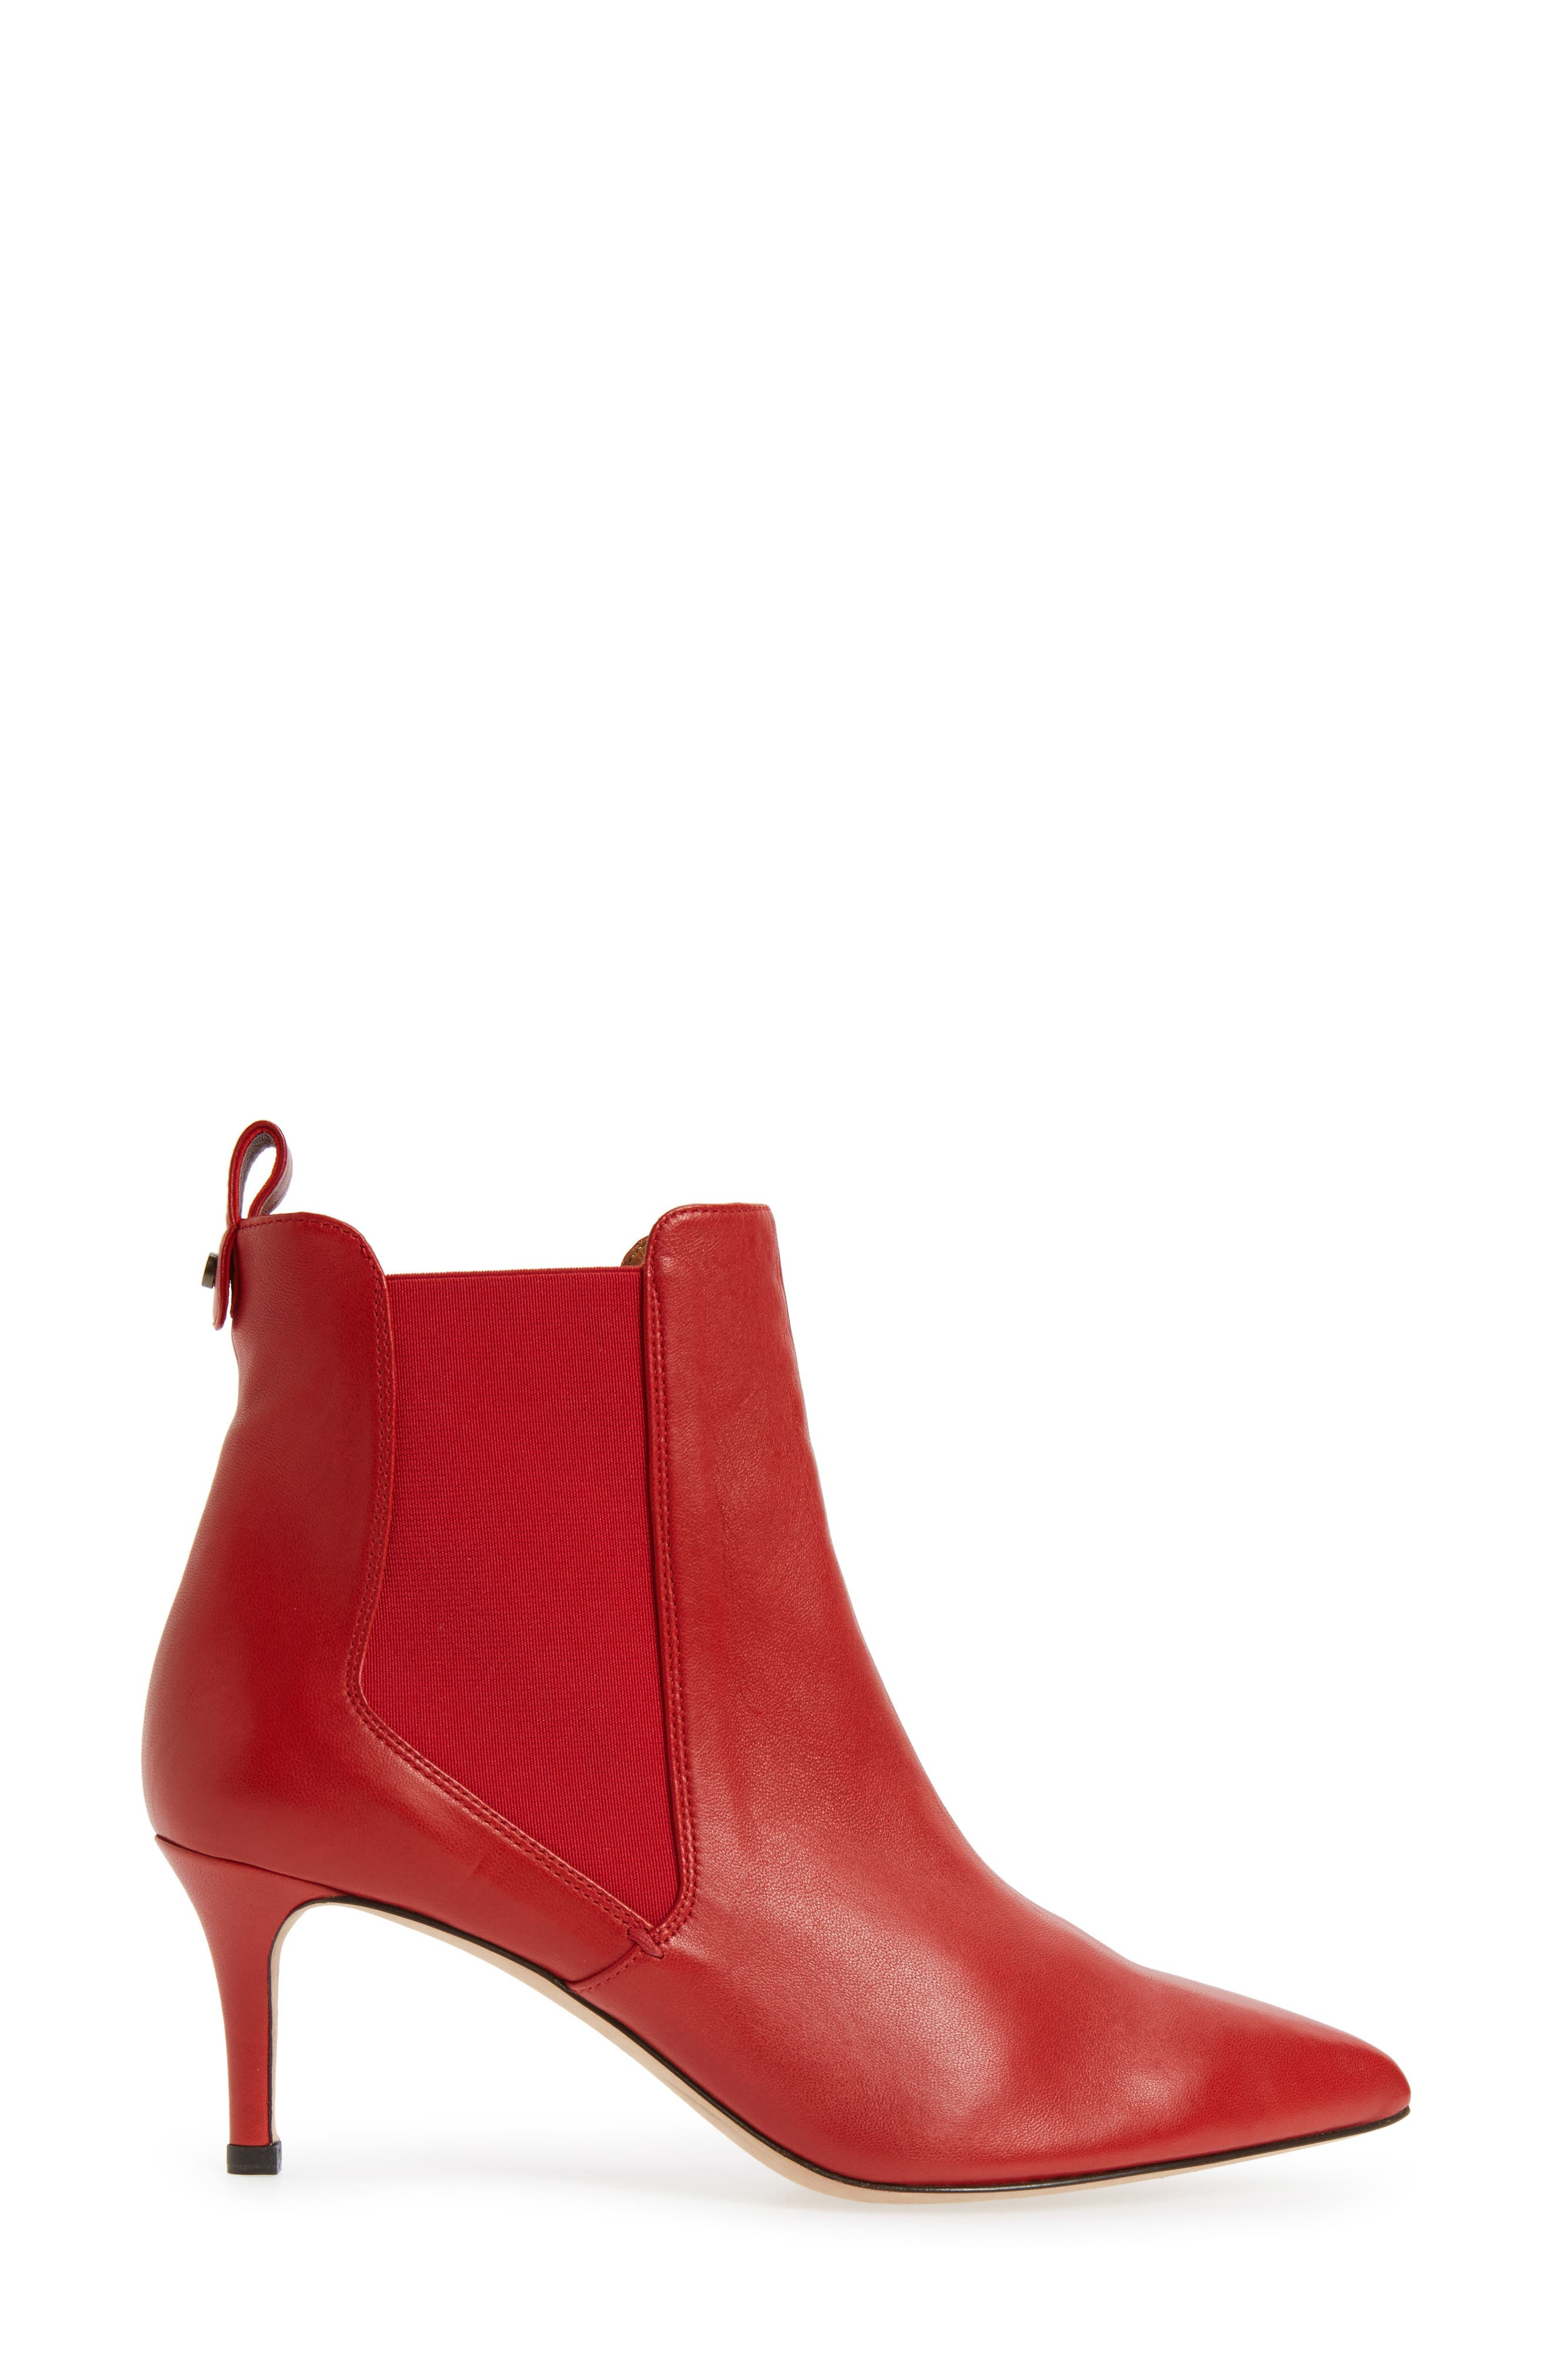 Alternate Image 3  - Veronica Beard Parker Pointy Toe Chelsea Bootie (Women)